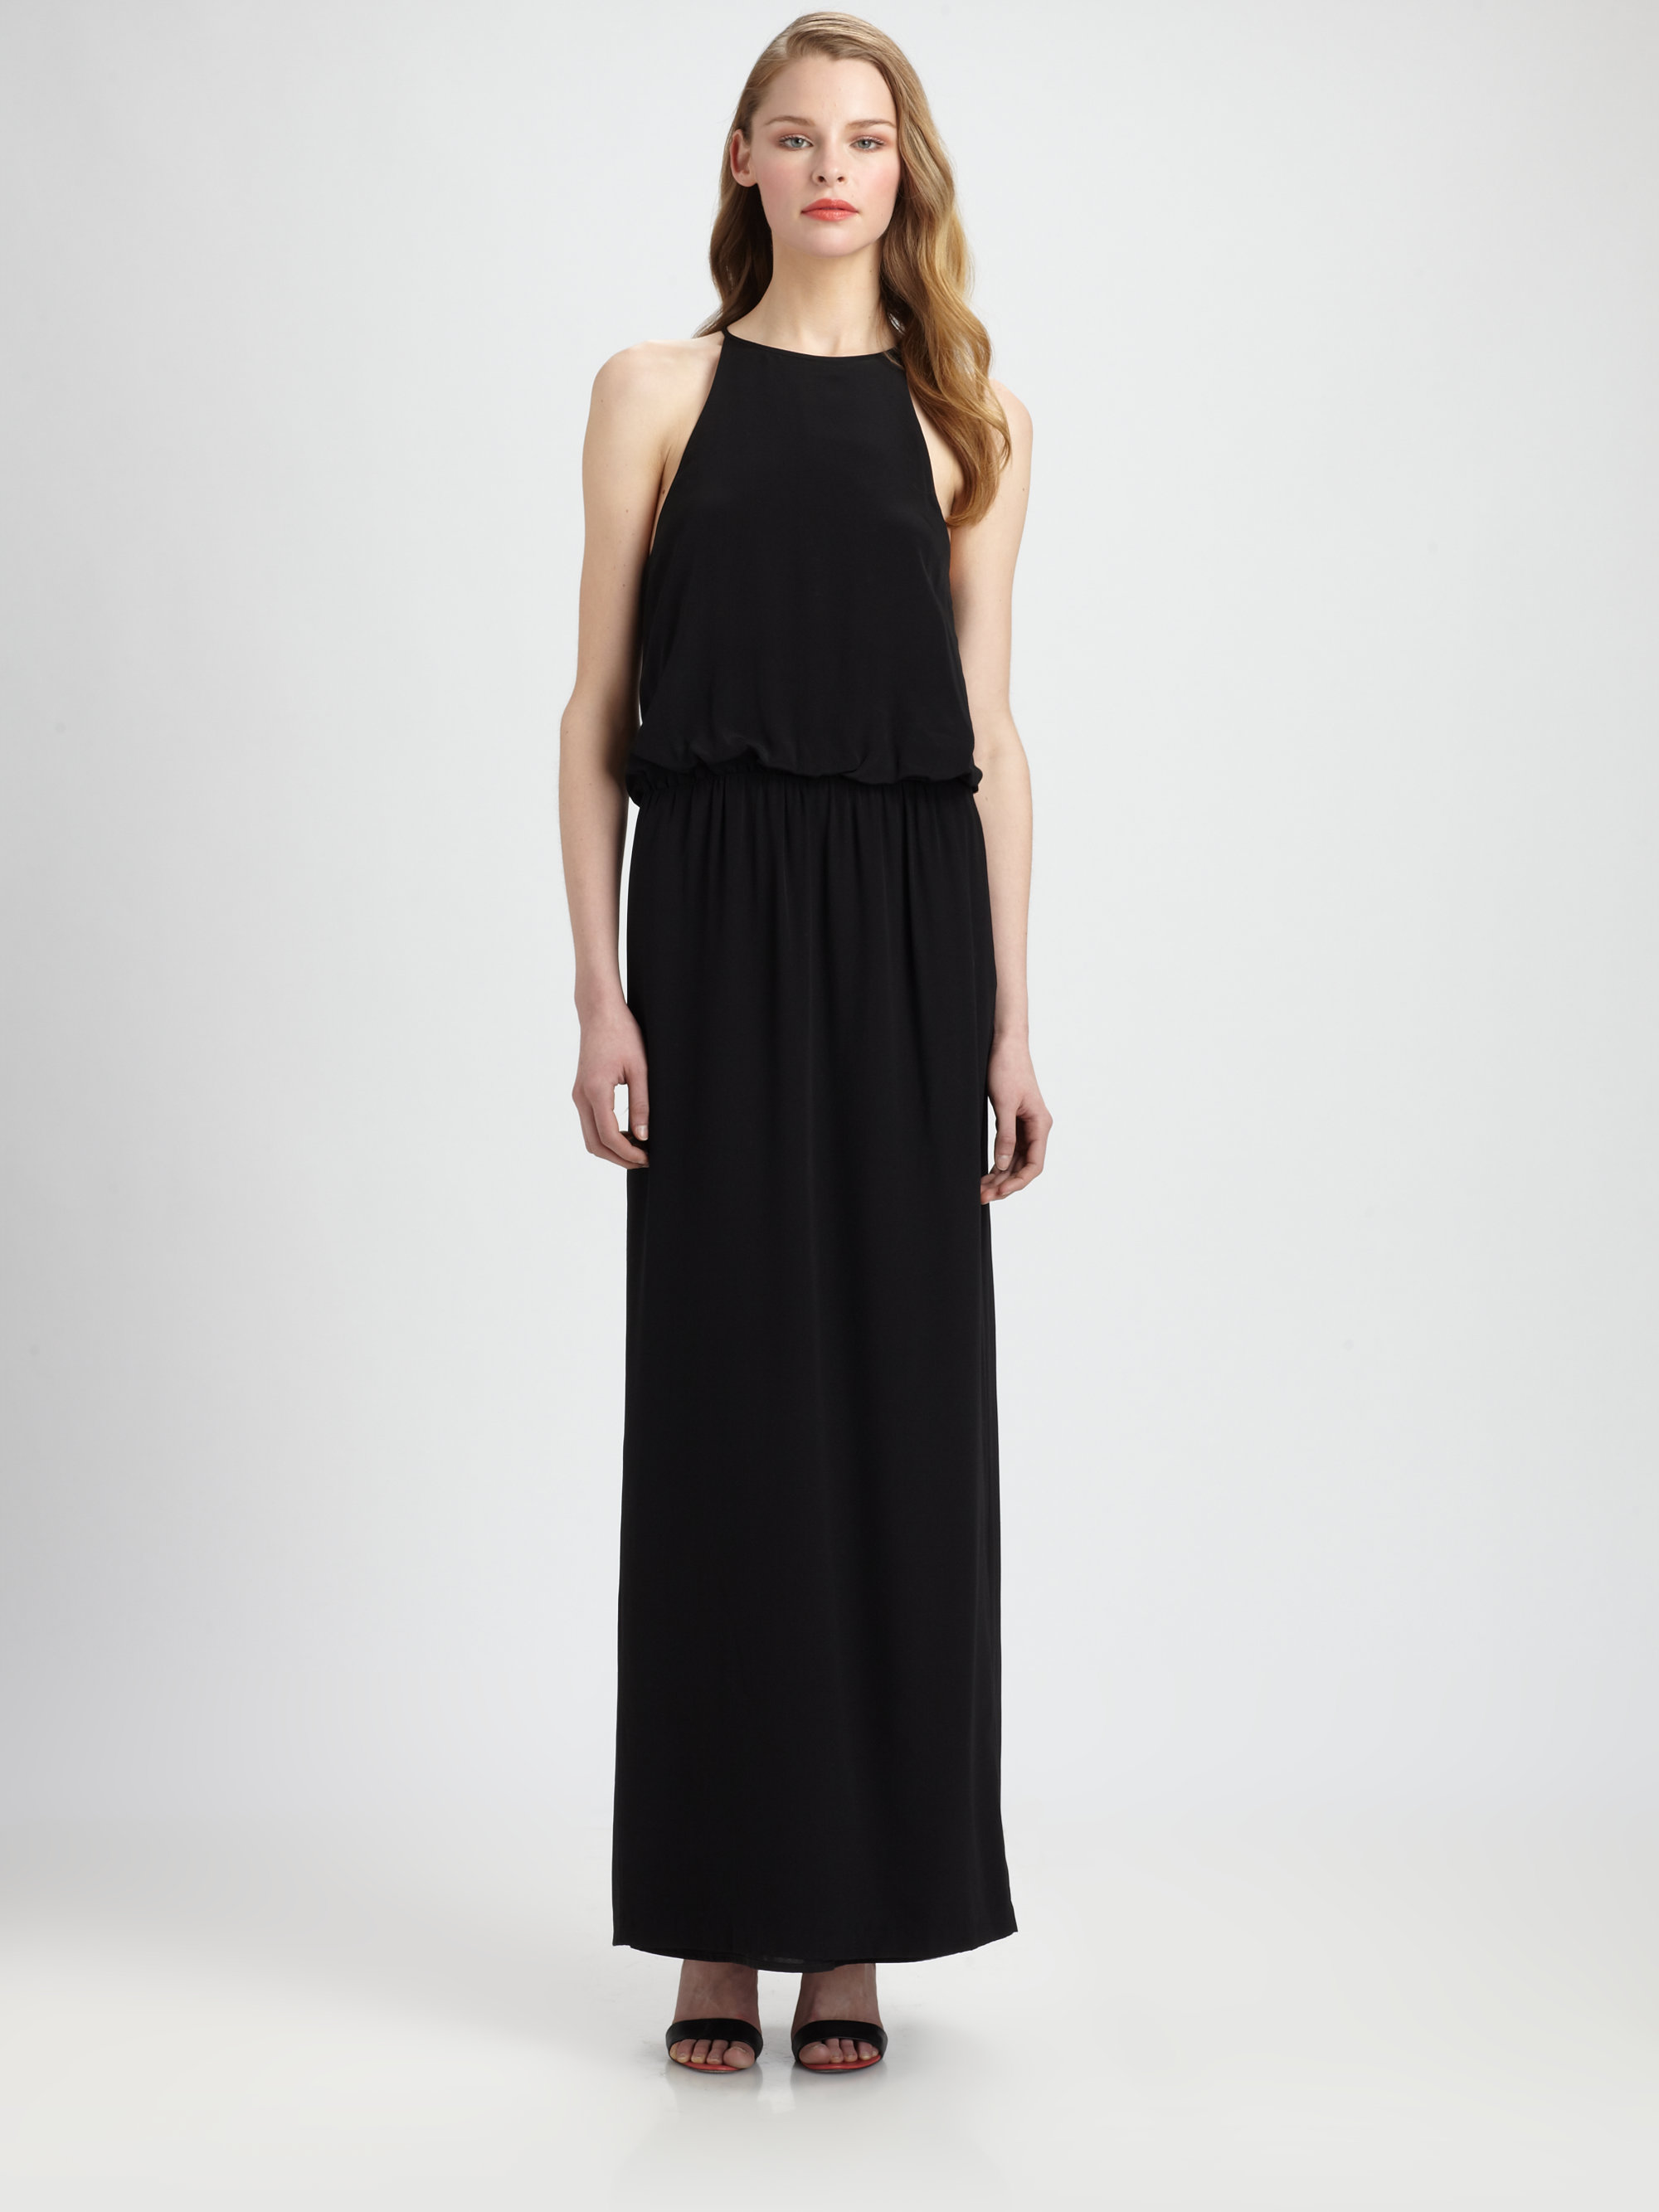 Tibi black maxi dress